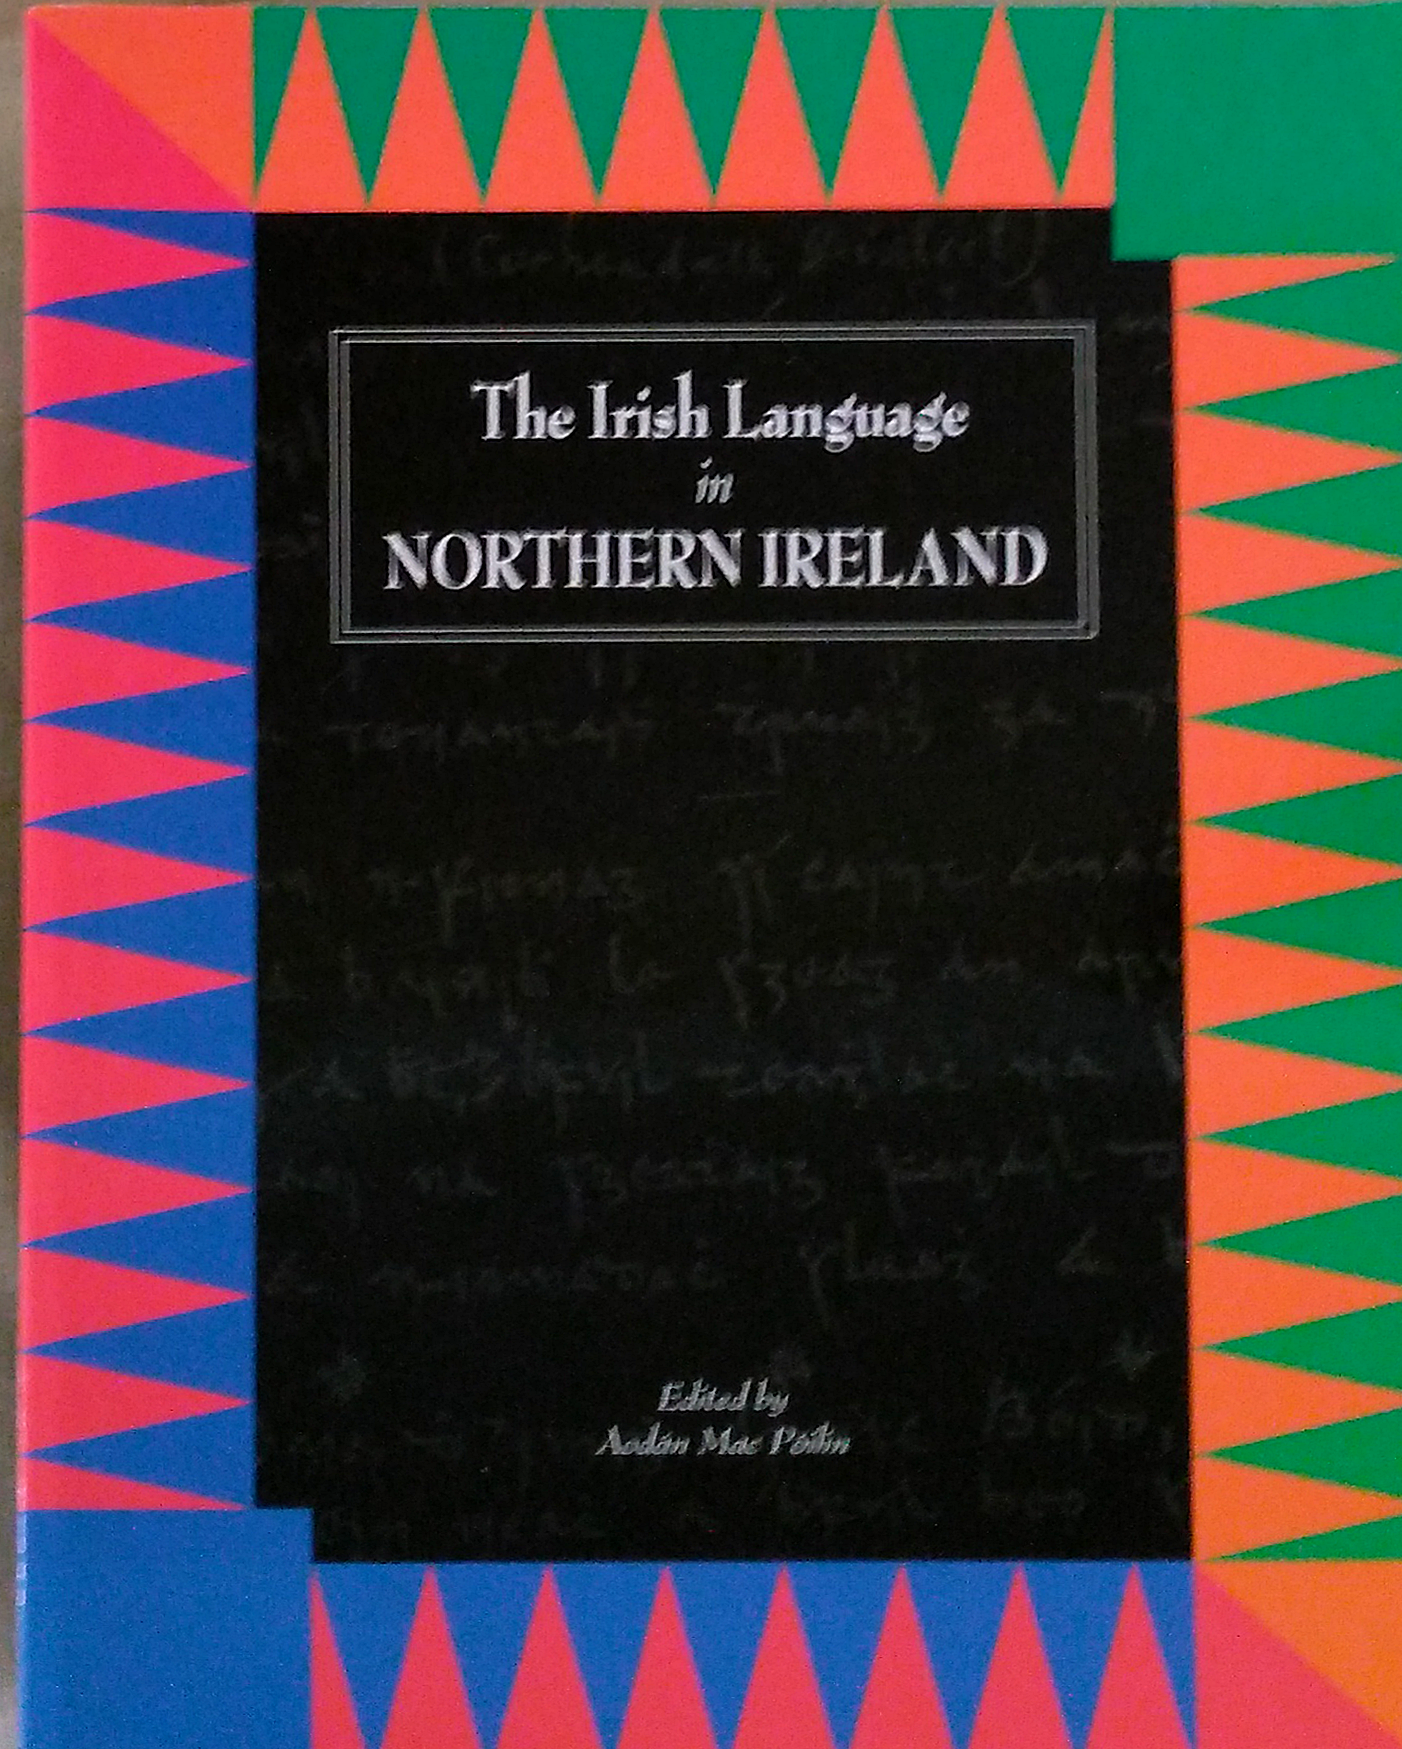 Irish language in NI